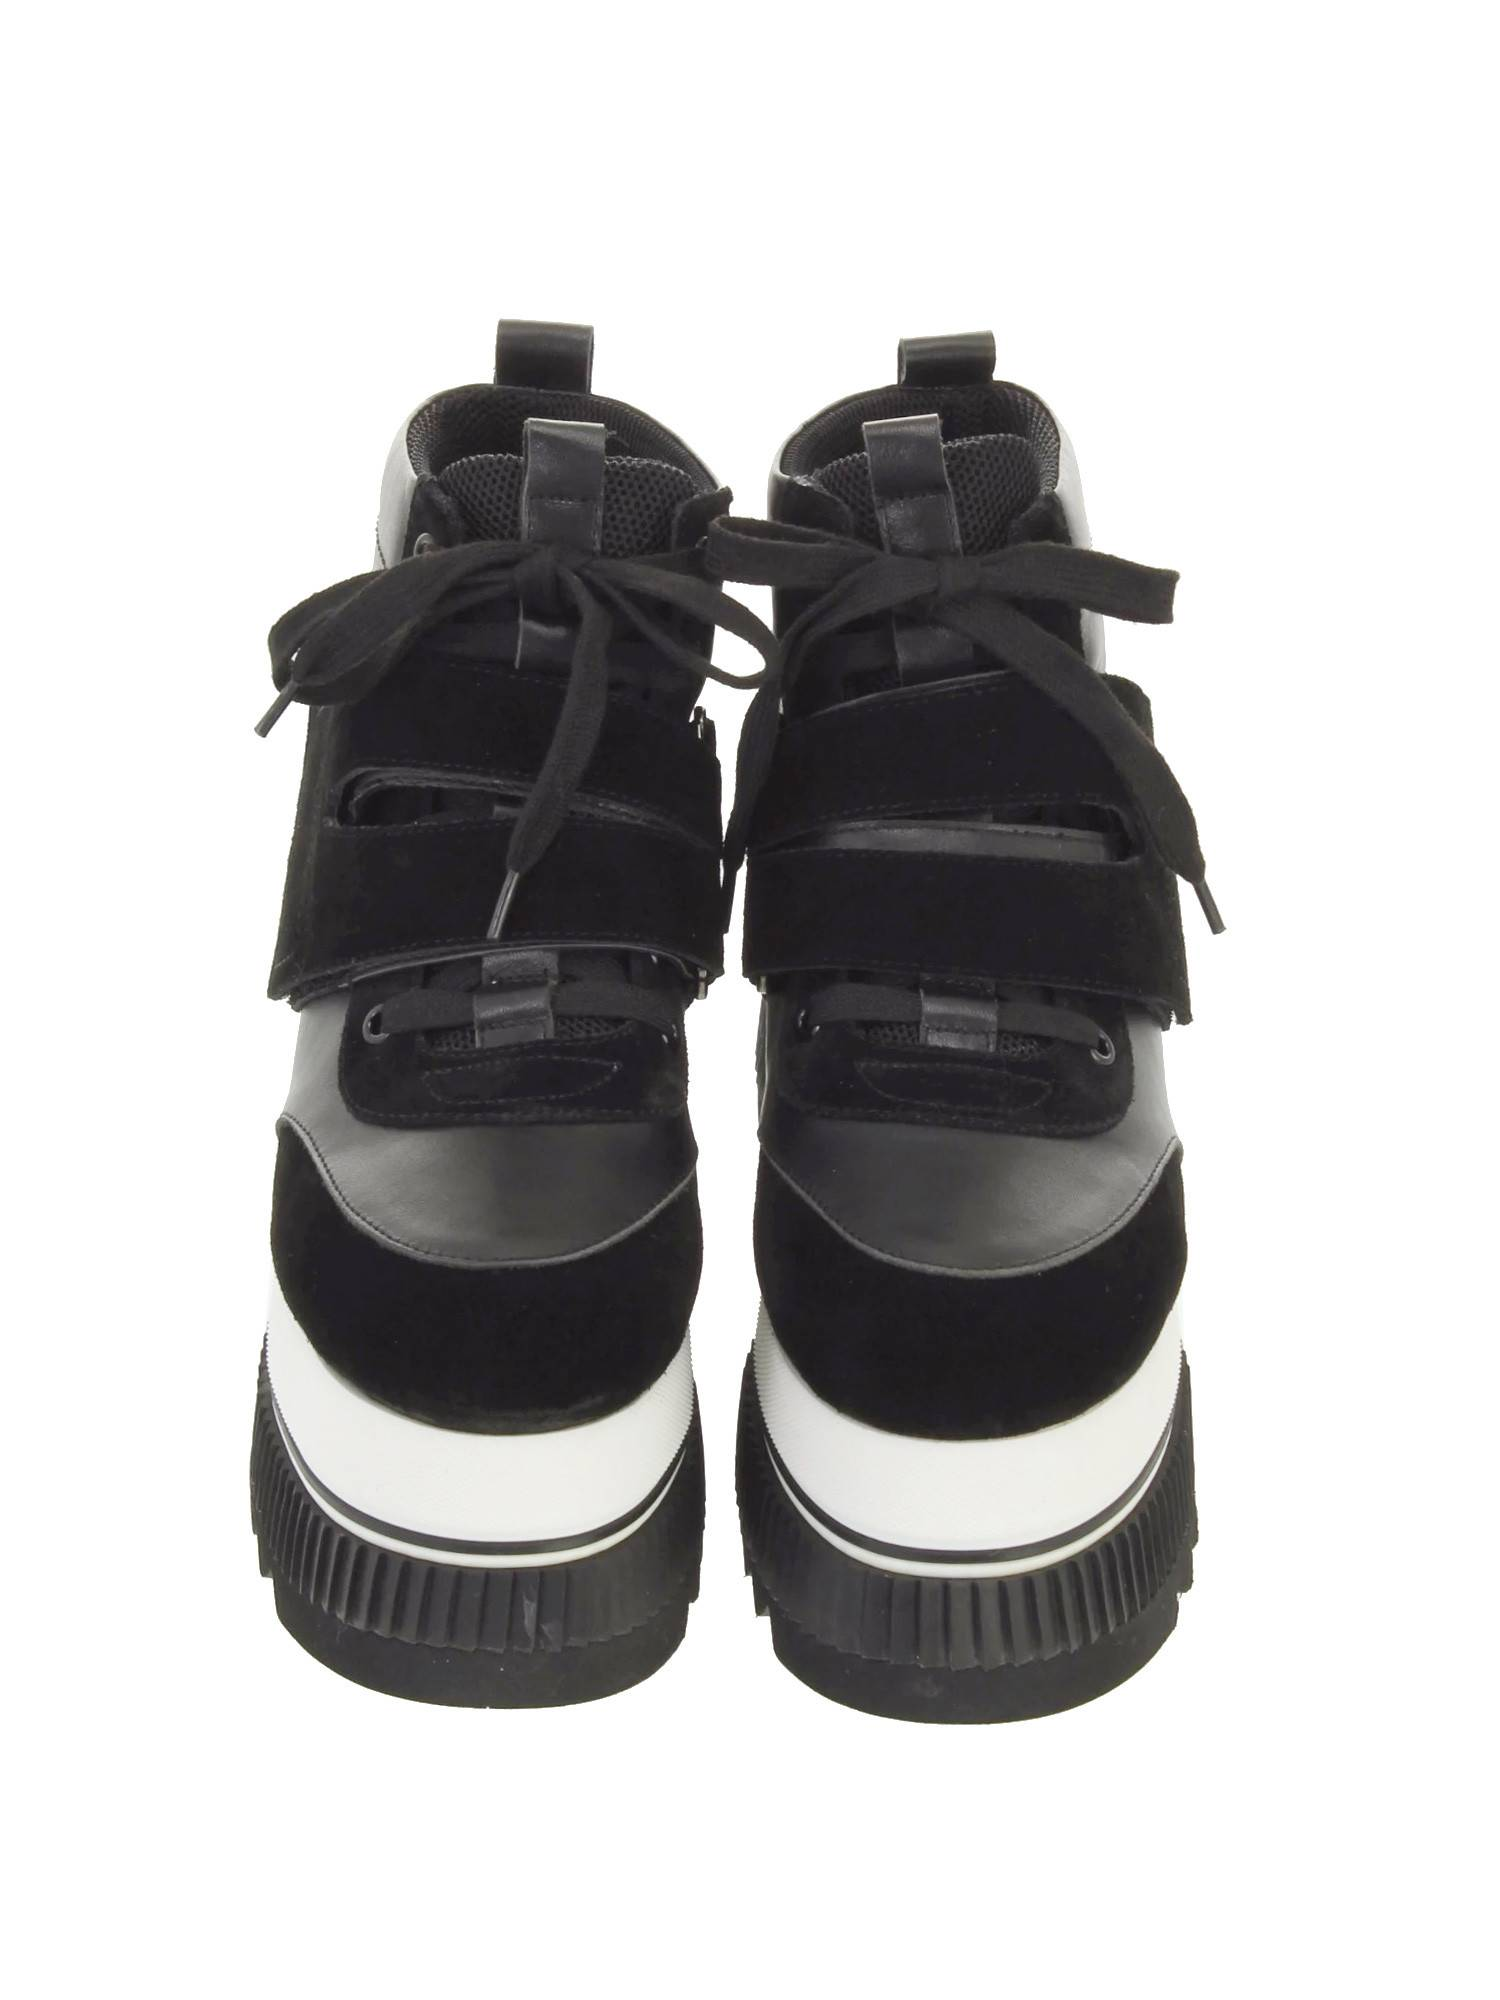 Chimera Sole Shoes